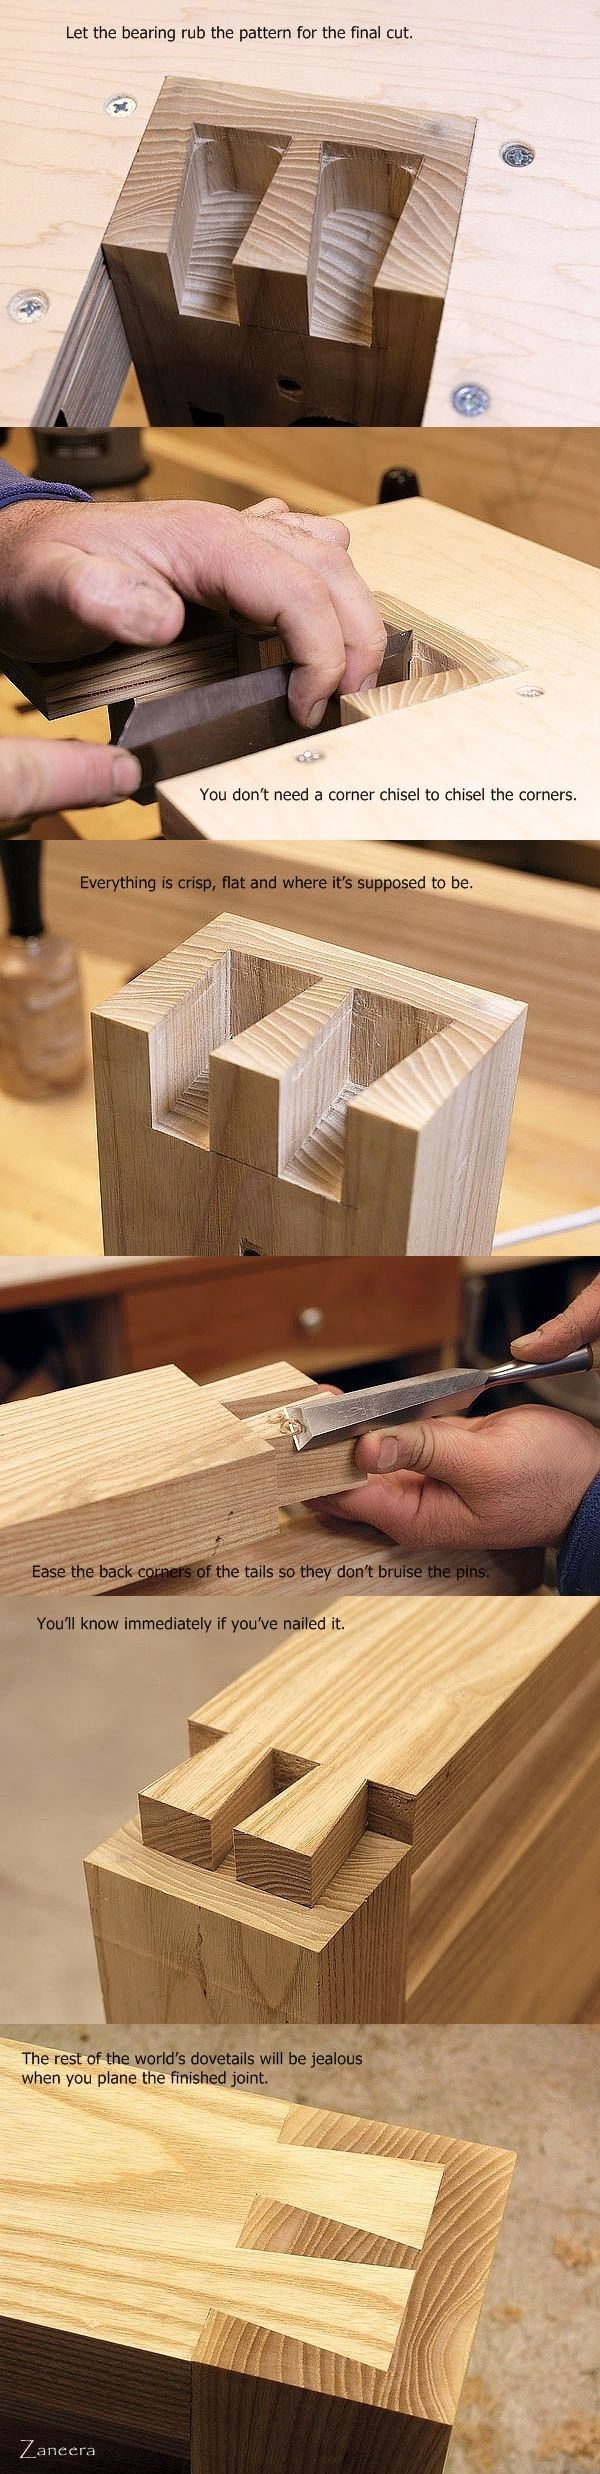 Dovetails Step by Step. Part 4 : Finishing. http://www.quiet-corner.com/diy/make-dovetails-step-by-step-guide/